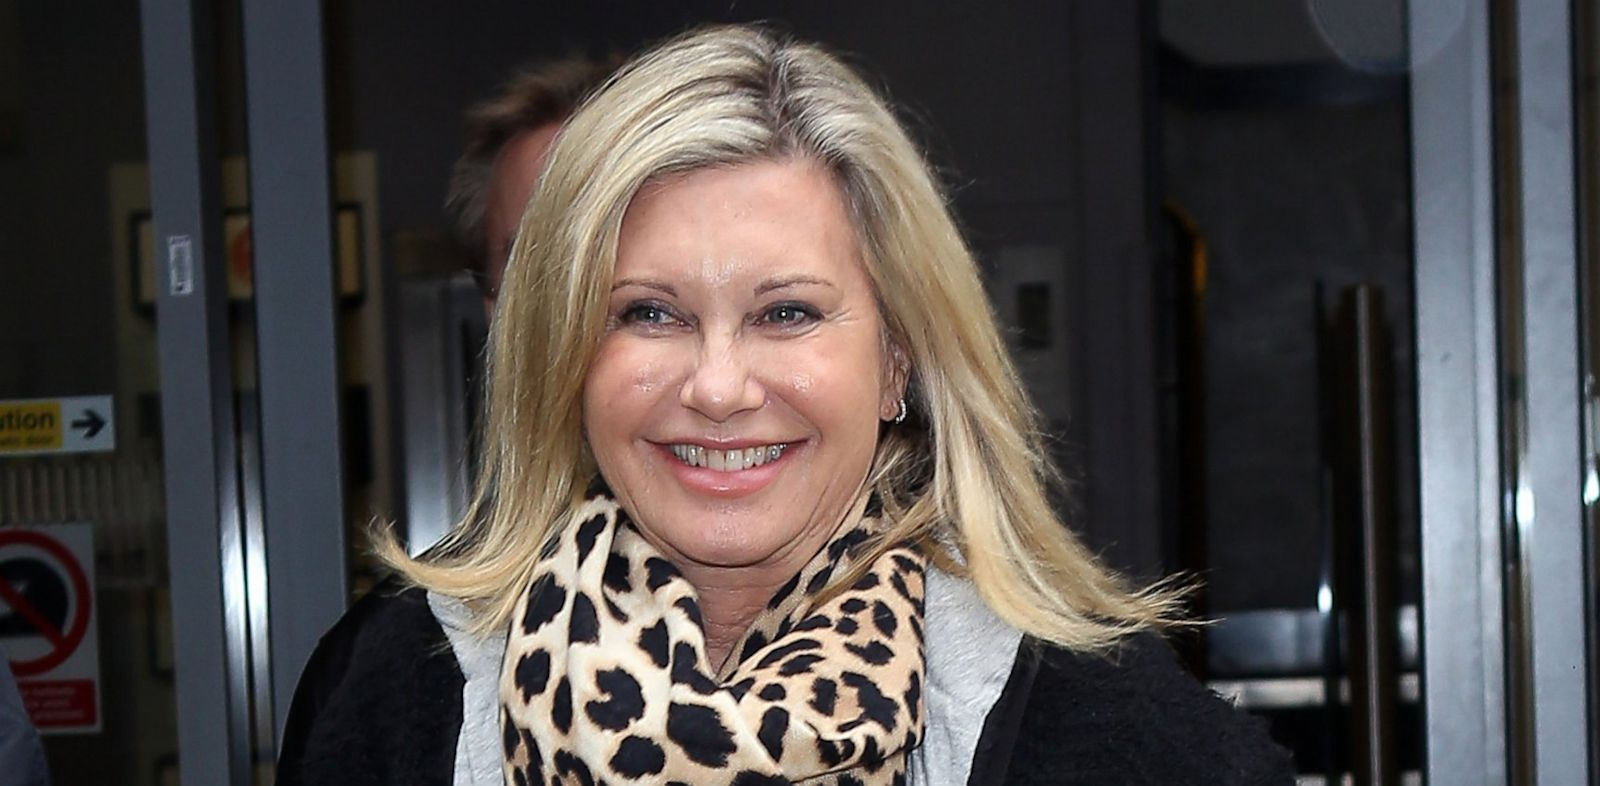 PHOTO: Olivia Newton-John seen at BBC Radio 2 on March 7, 2013 in London, England.